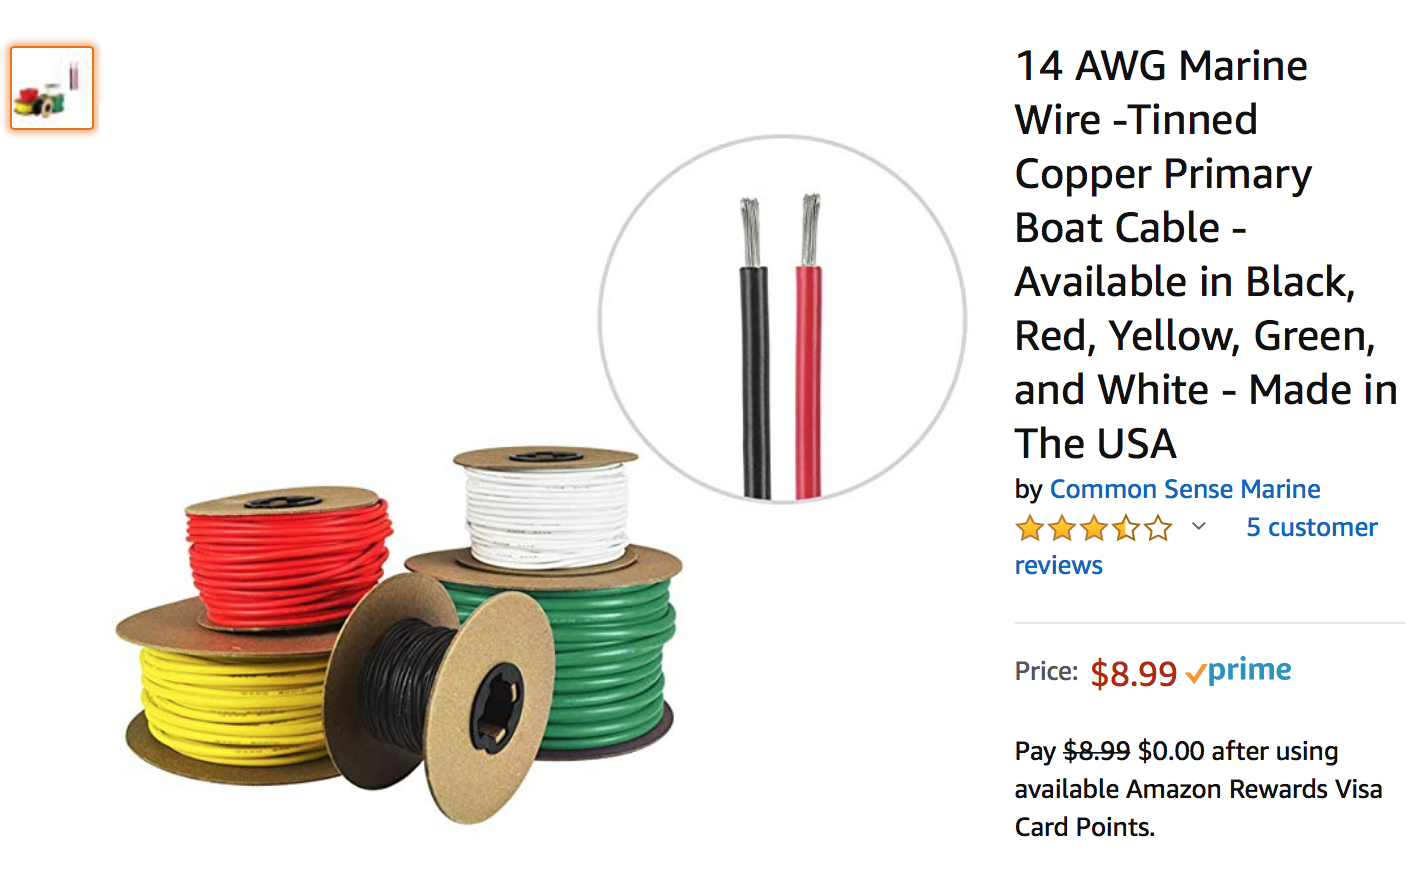 Made in The USA Tinned Copper Boat Battery Cable Yellow Green Available in Black and White Red 8 AWG Marine Wire